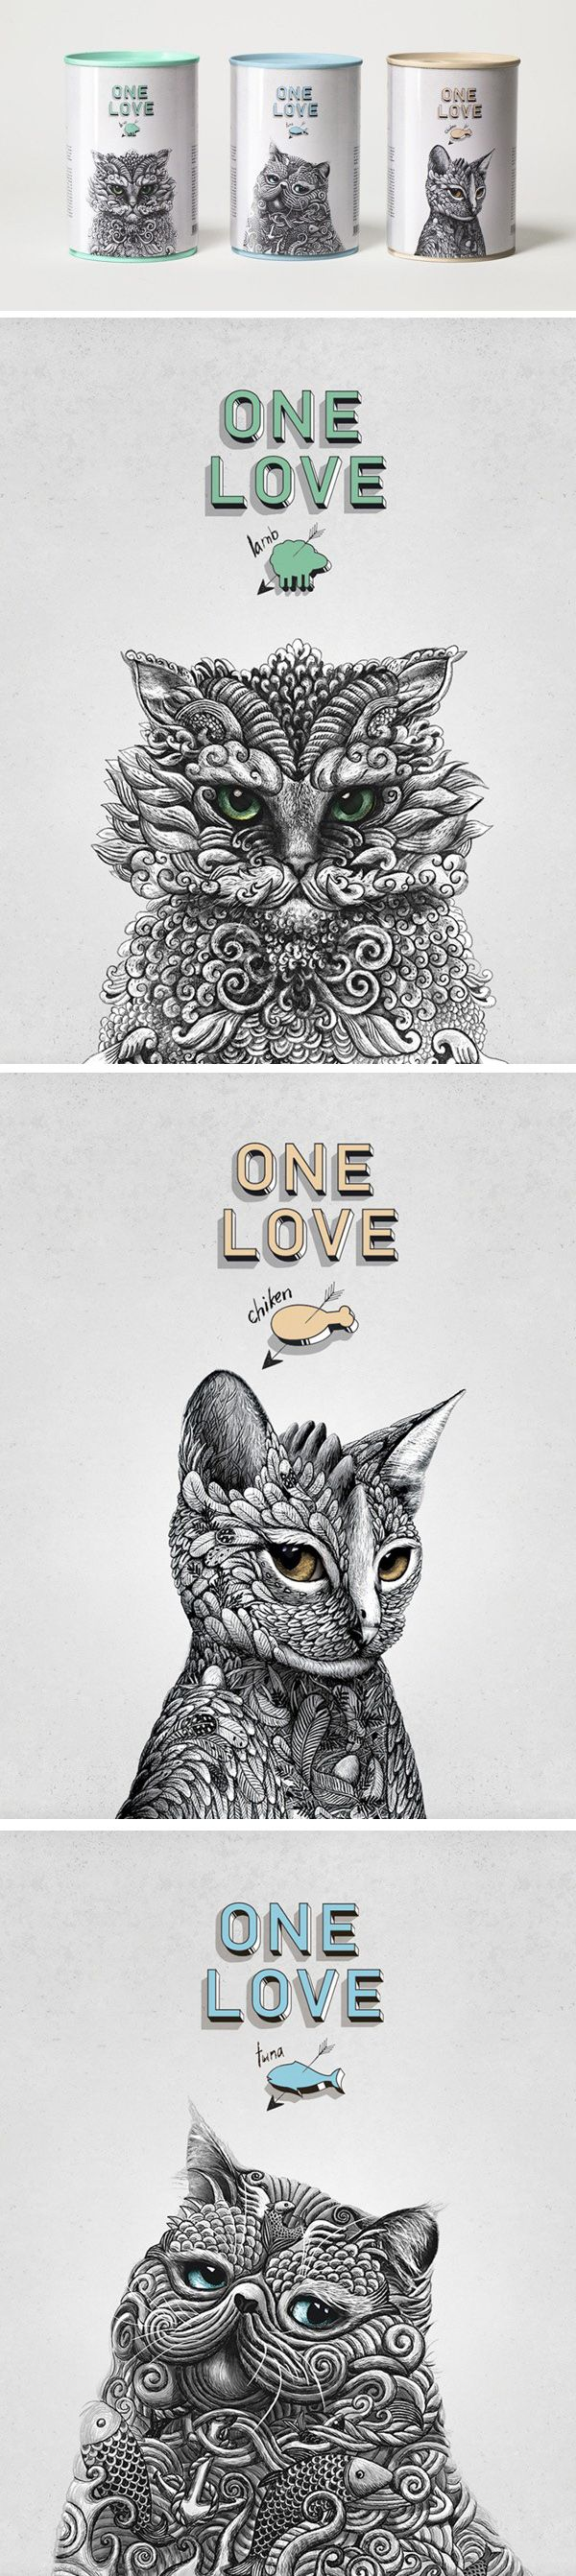 ONE LOVE Cat food Design